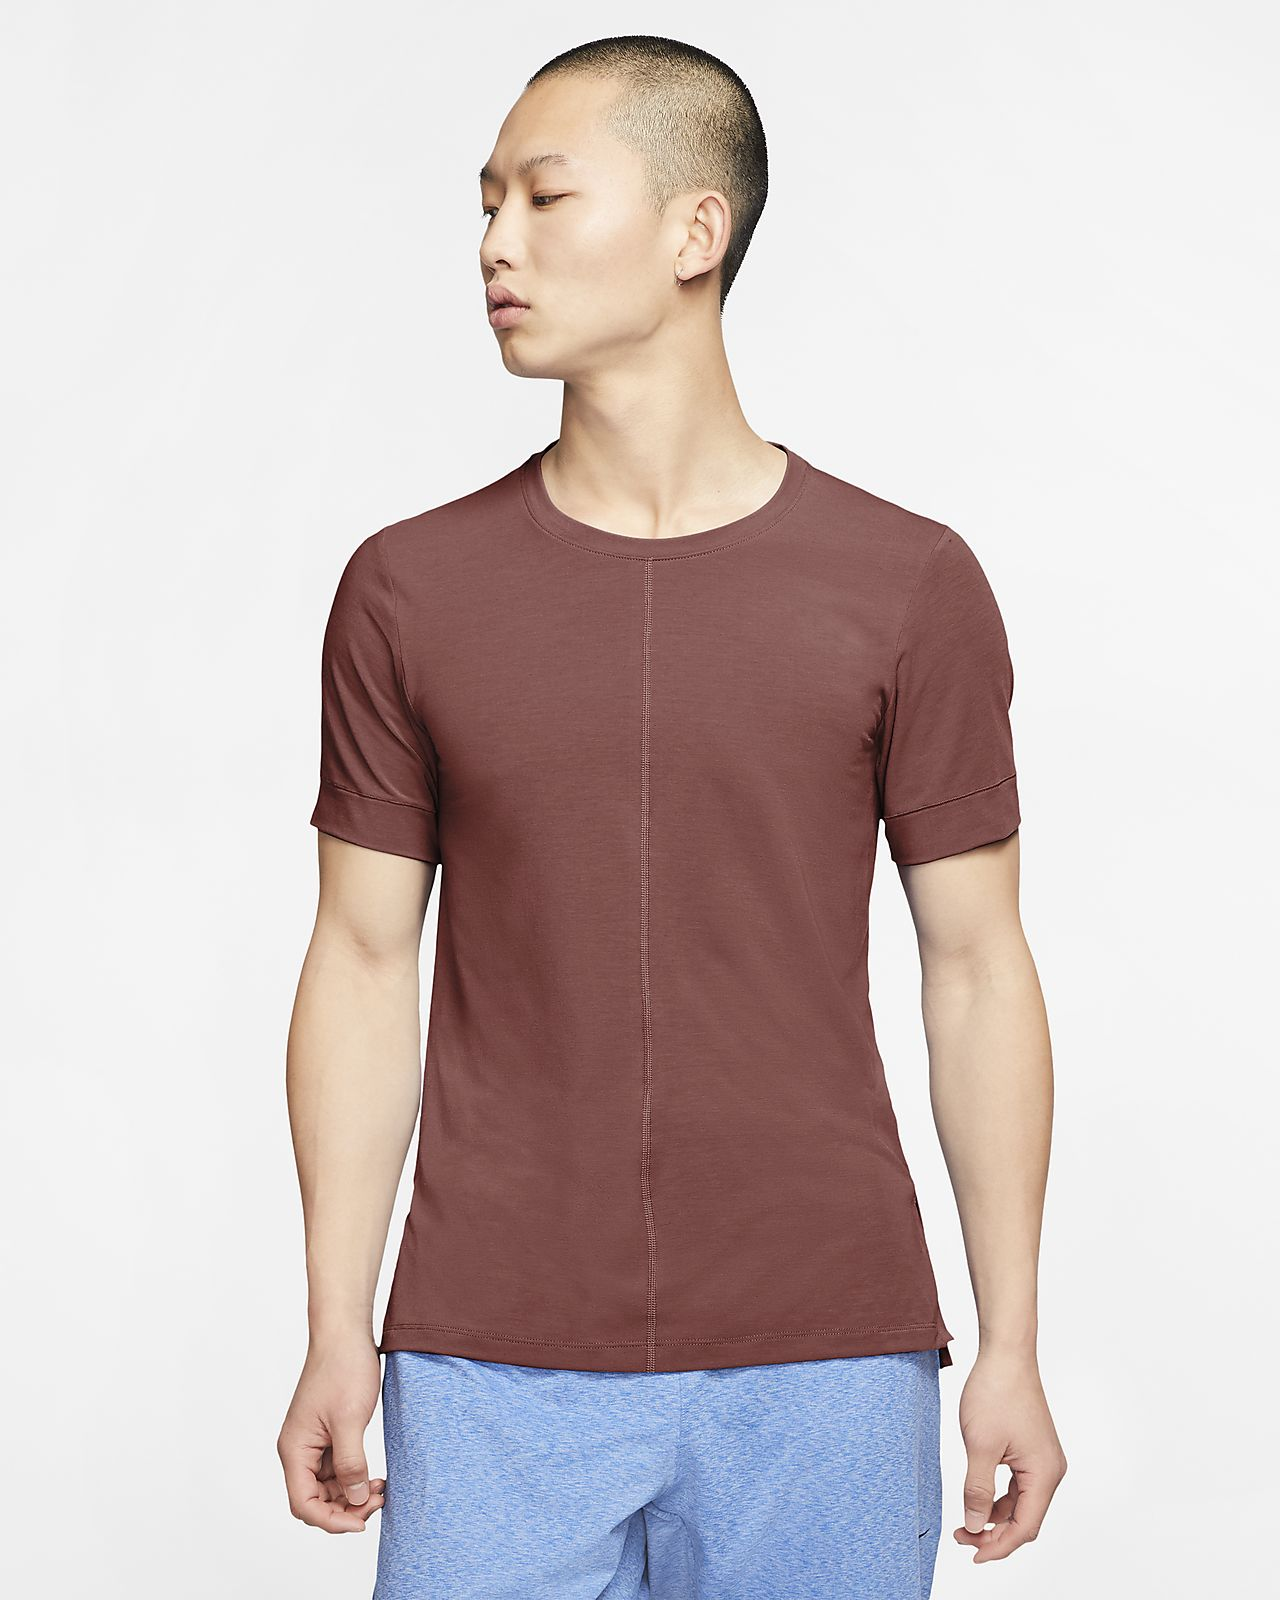 Nike Yoga Men's Short-Sleeve Top